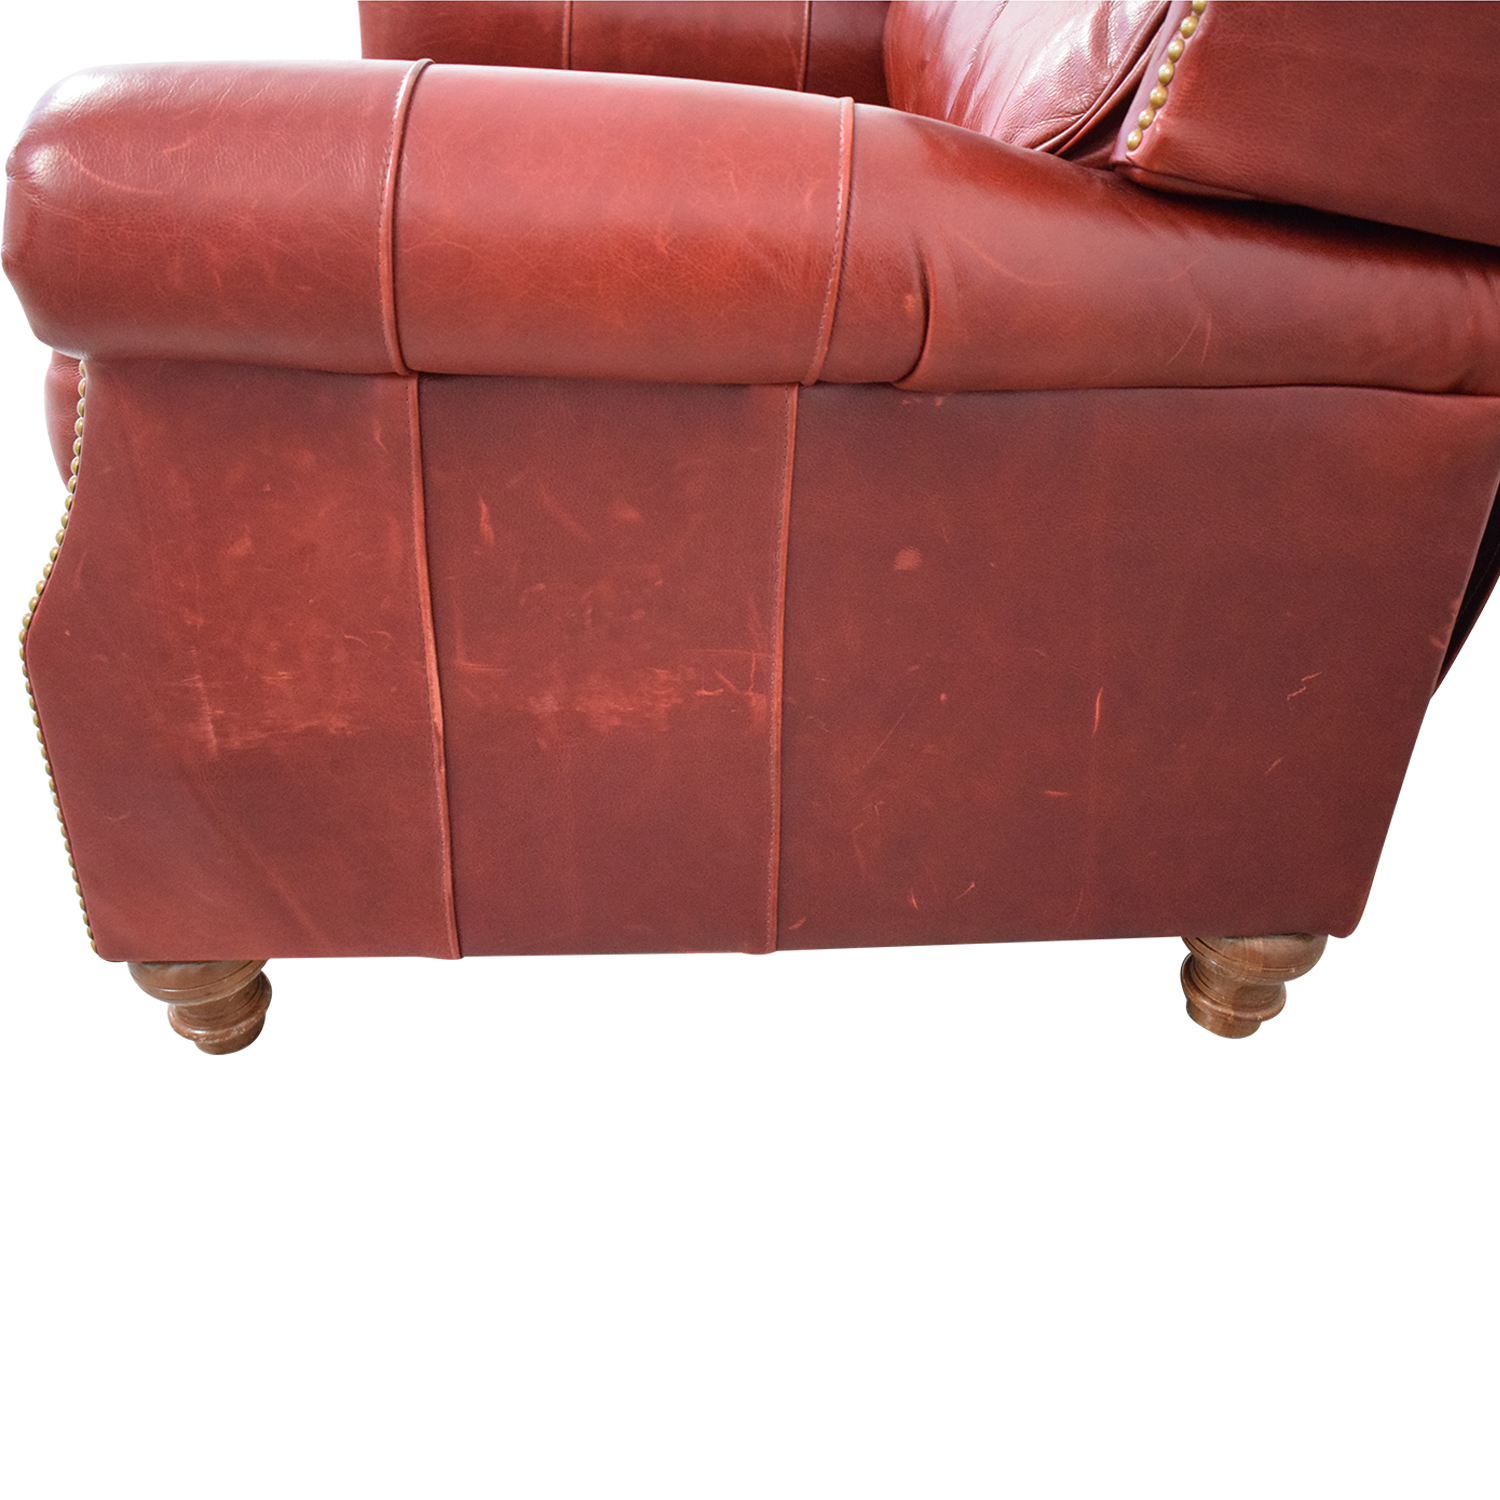 McKinley Leather Furniture McKinley Leather Recliner red